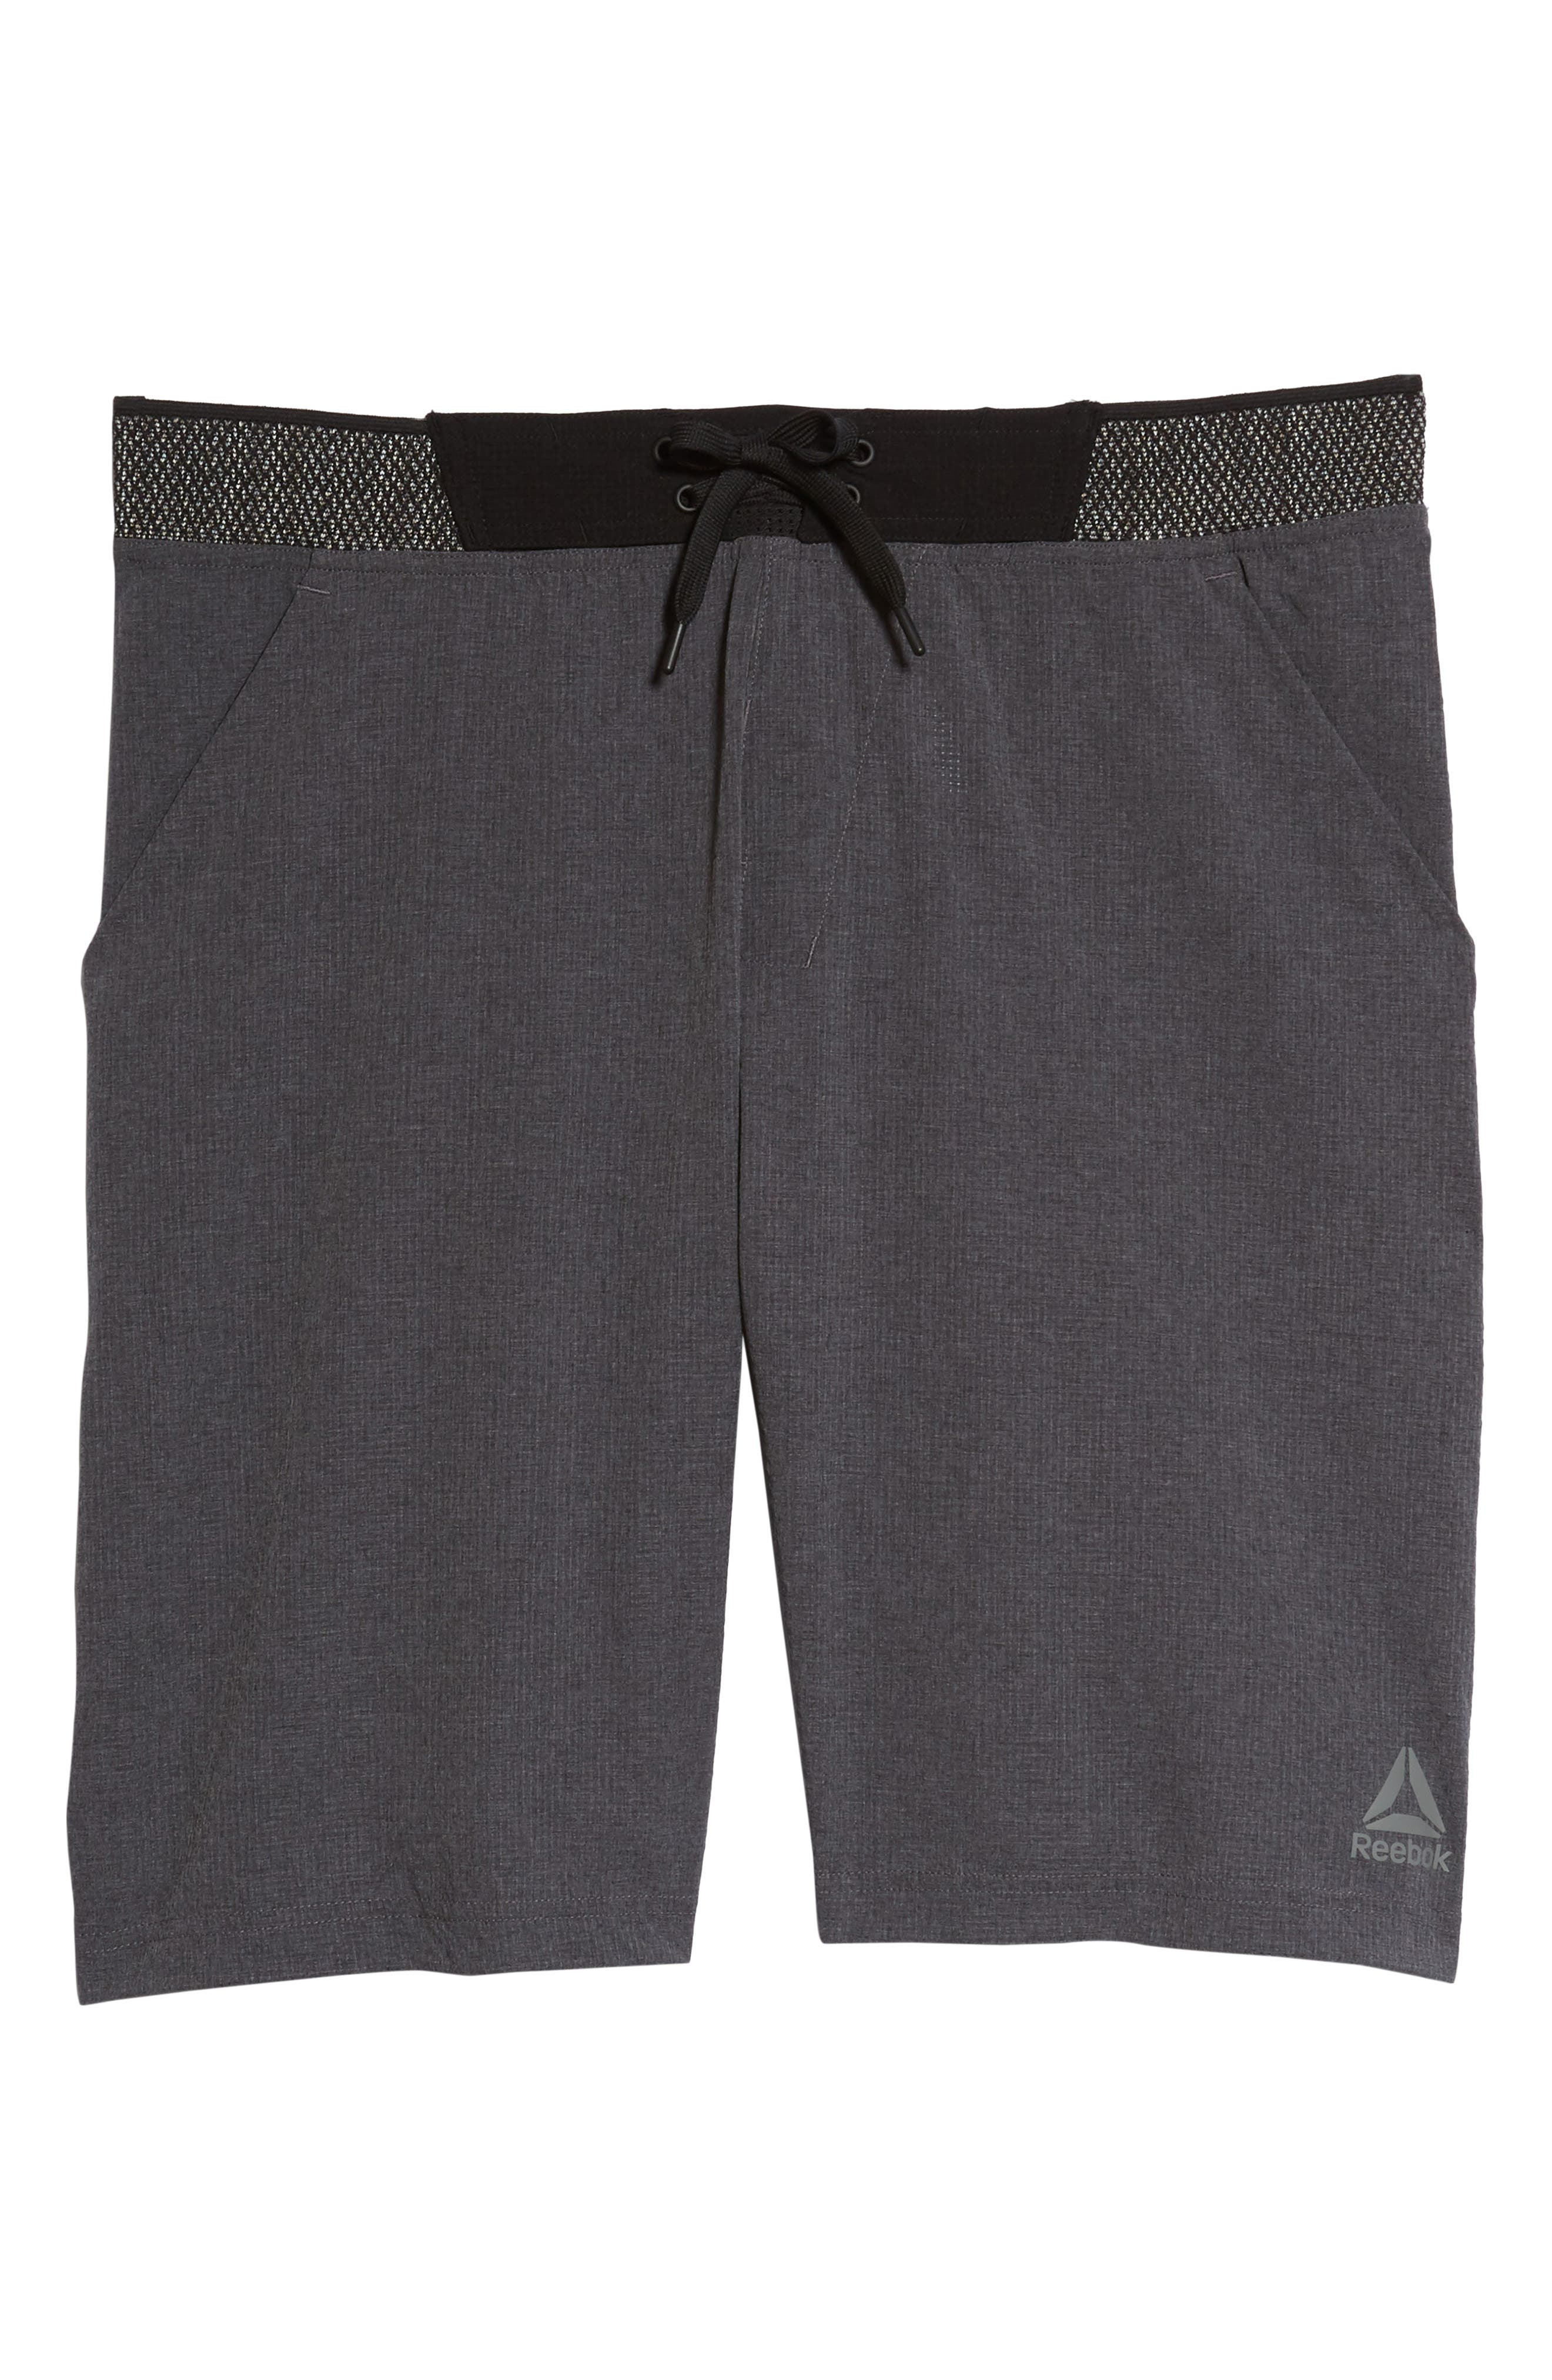 Epic Knit Shorts,                             Alternate thumbnail 6, color,                             Dark Grey Heather